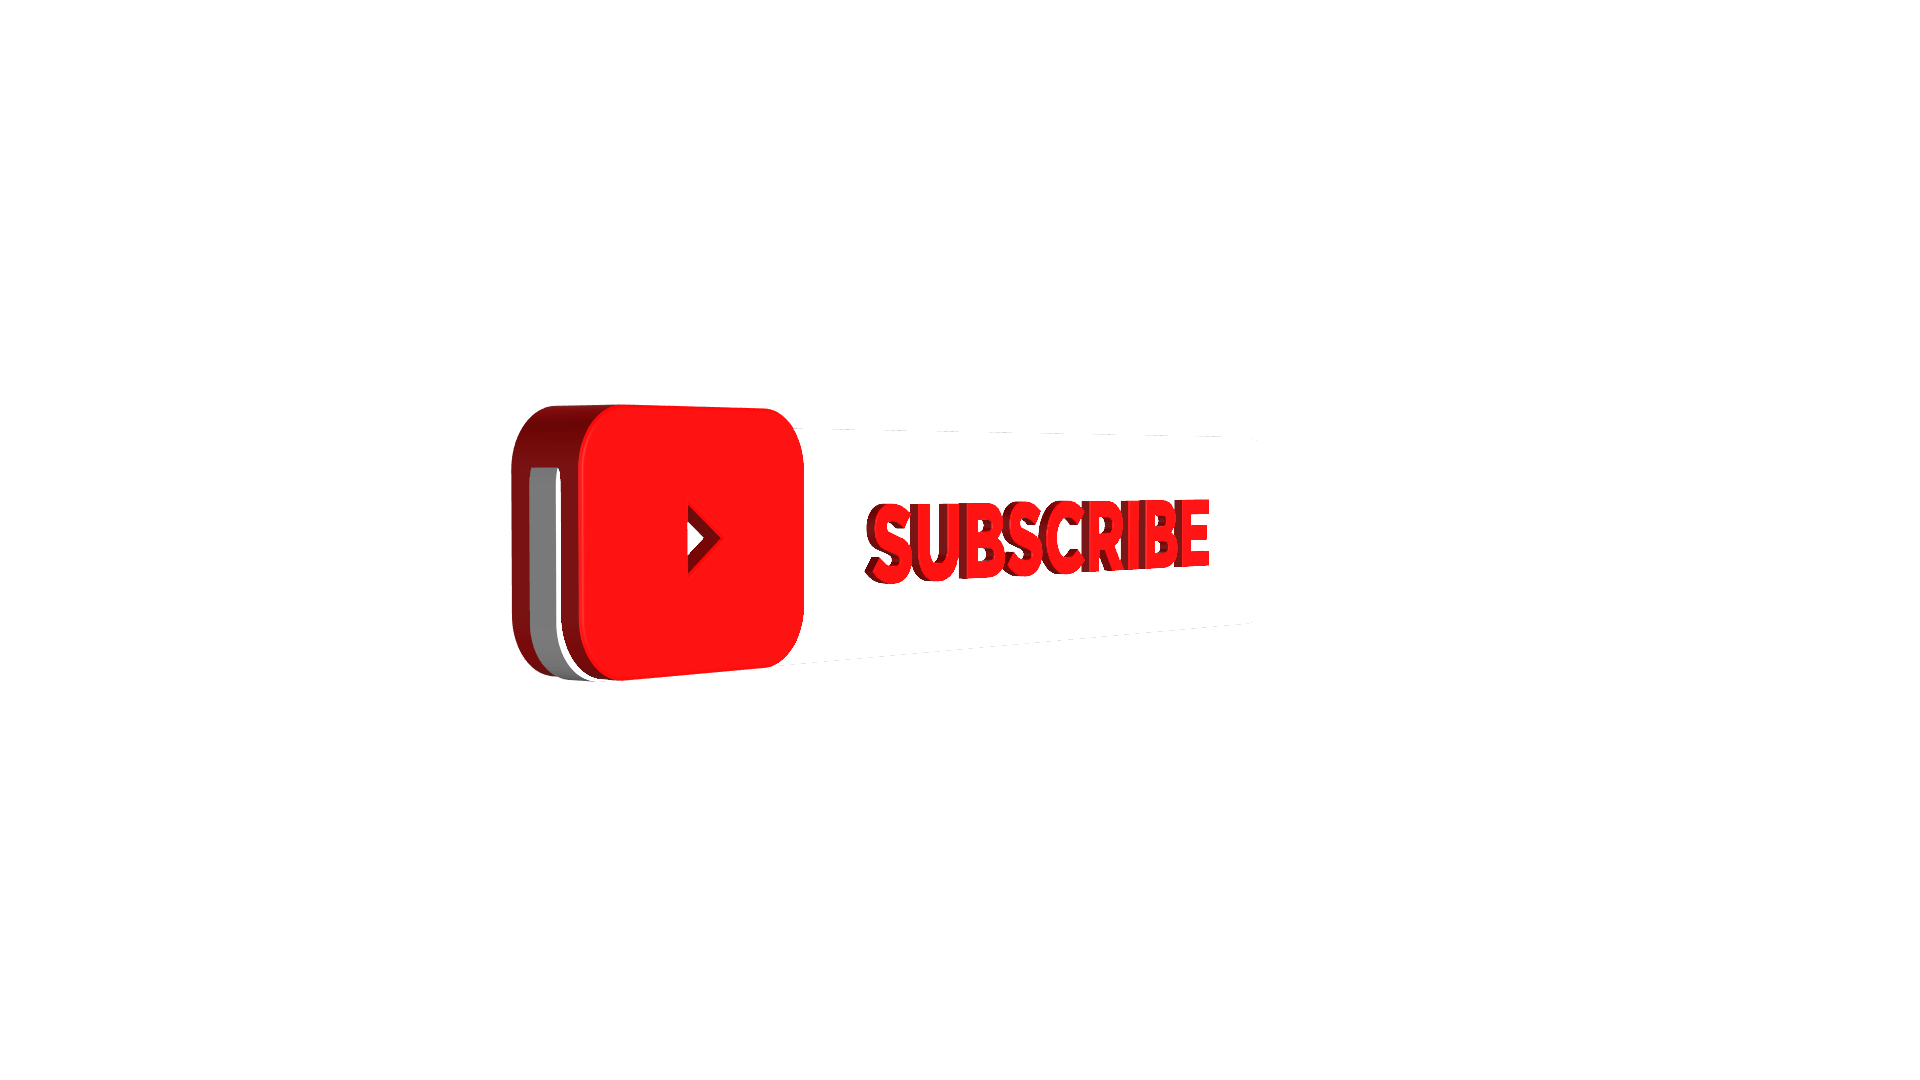 Subscribe clipart gif vector transparent Subscribe Gif Png – Lapsi vector transparent